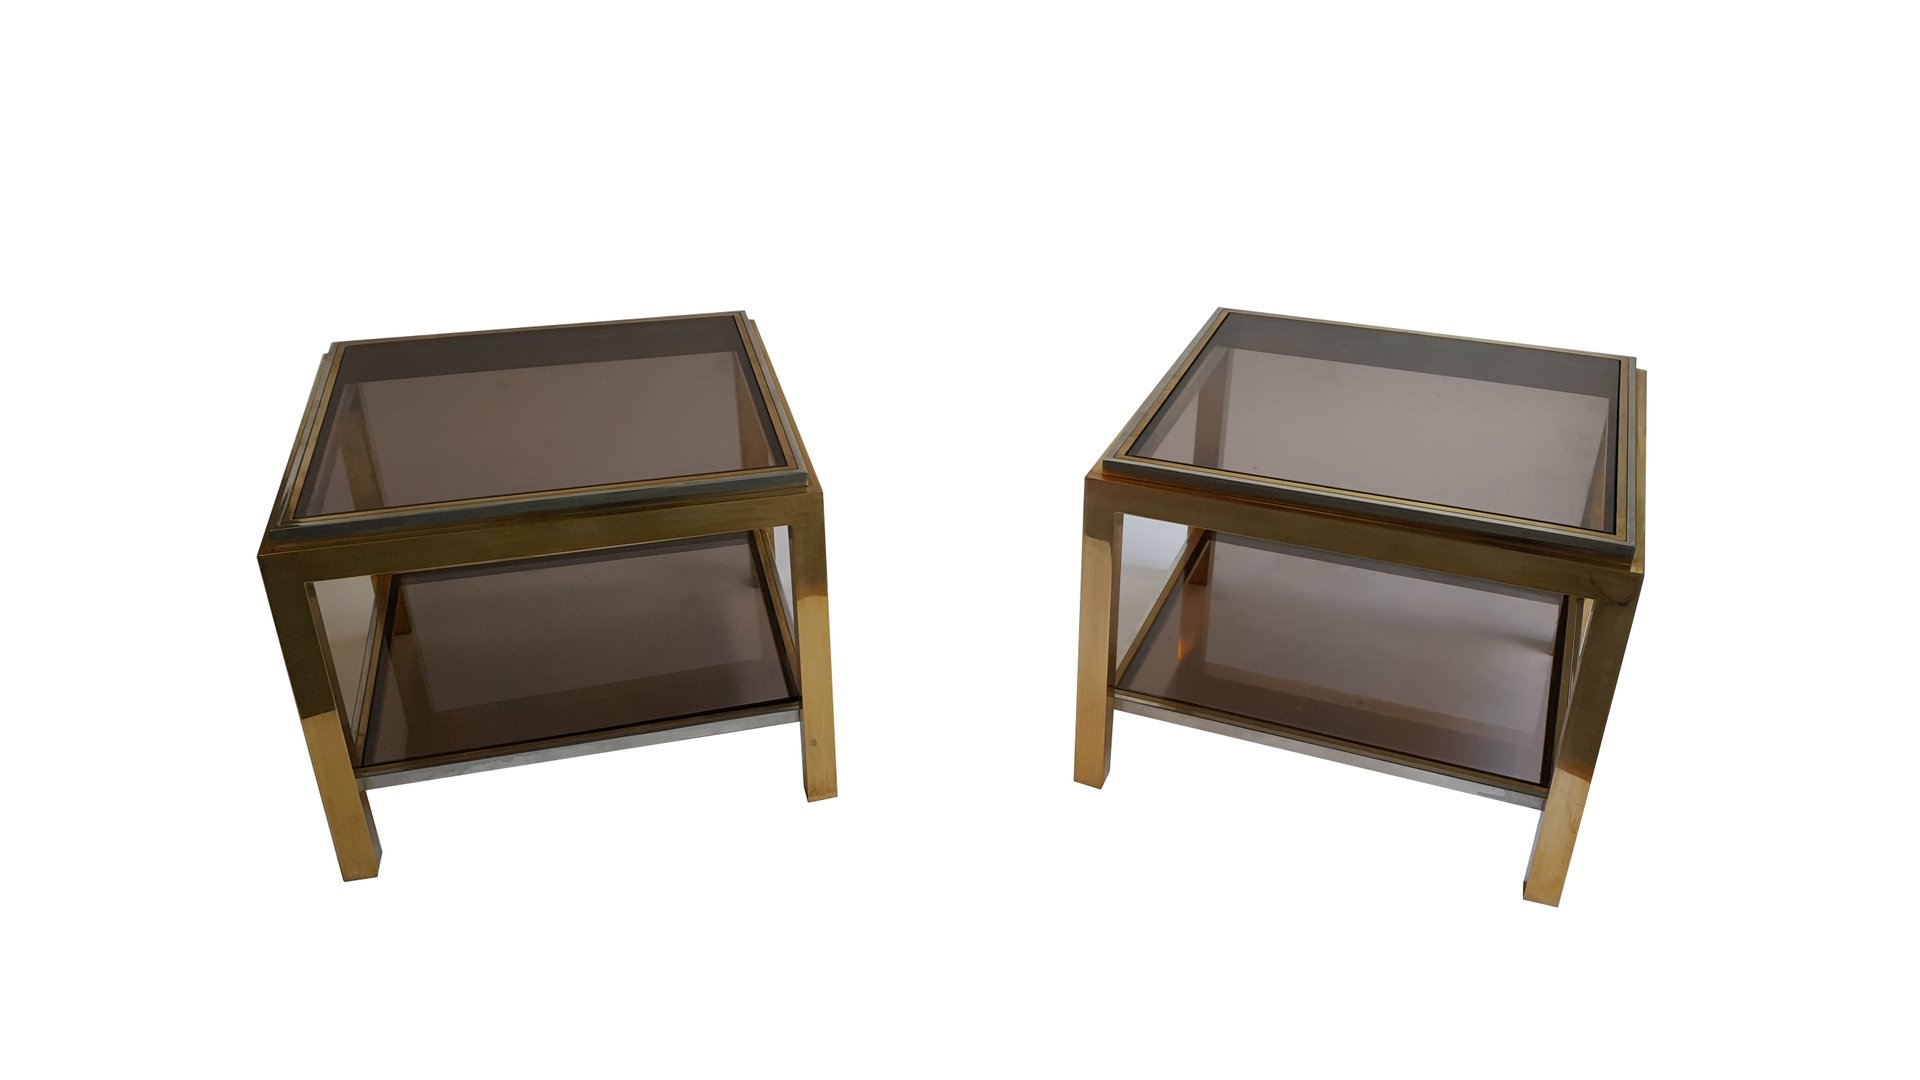 Brass and Smoked Glass Coffee Tables by Jean Charles Set of 2 for